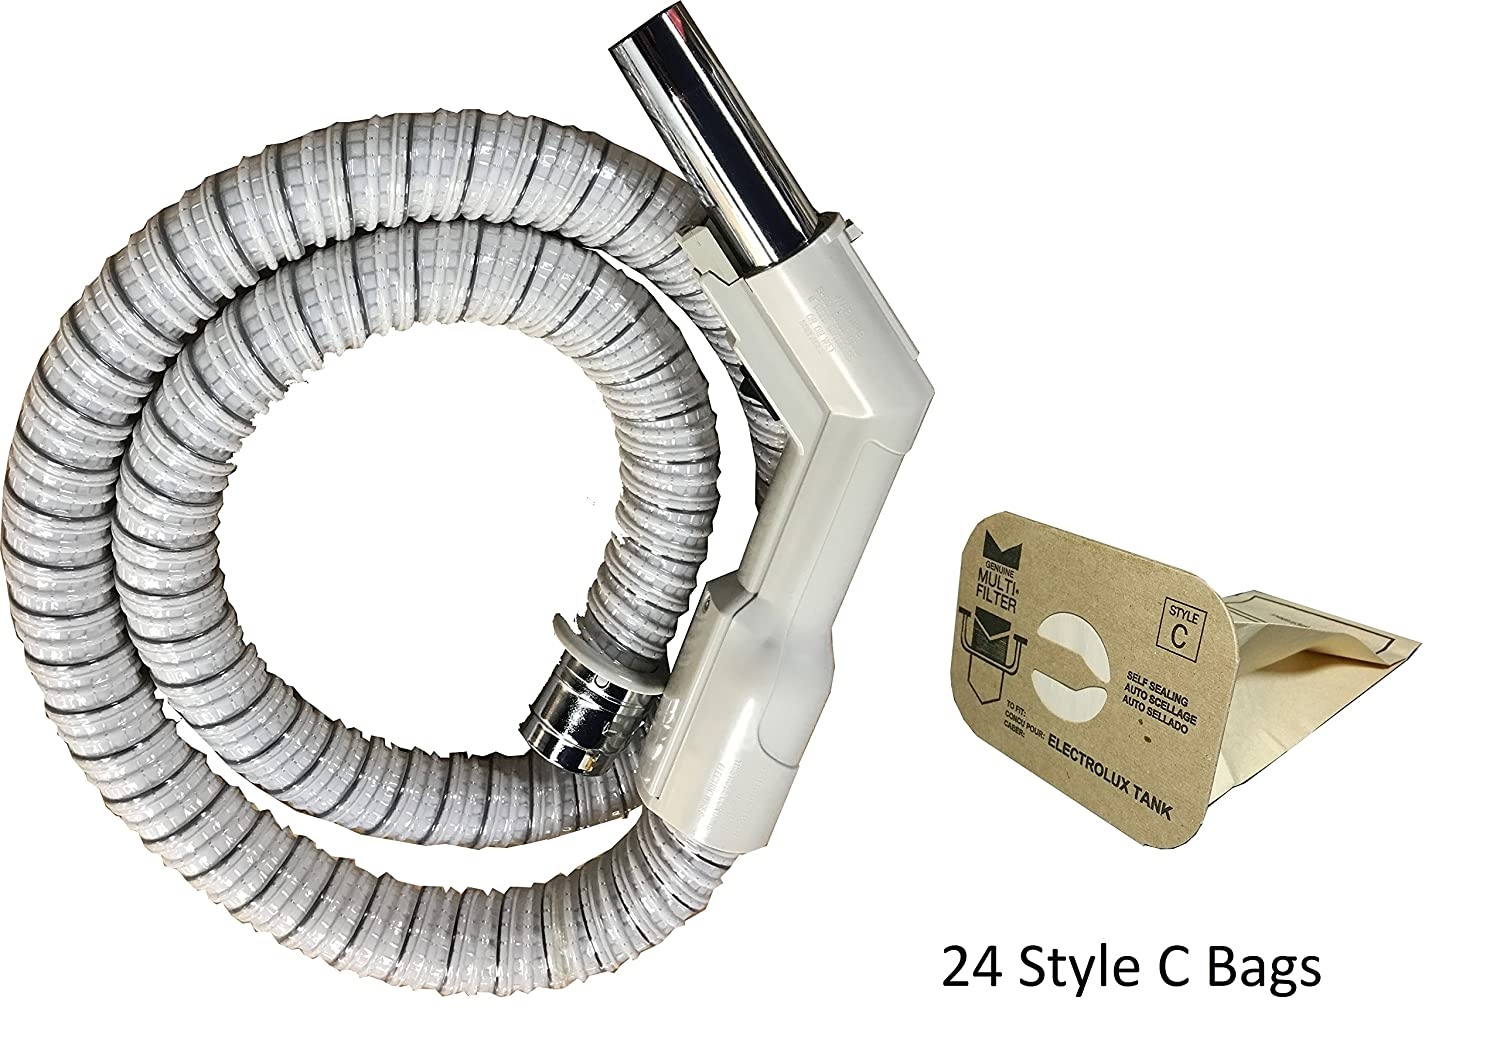 Electrolux Hose with Metal Machine End (Electrolux Hose W/24 C Bags Bundle) Aftermarket Replacement